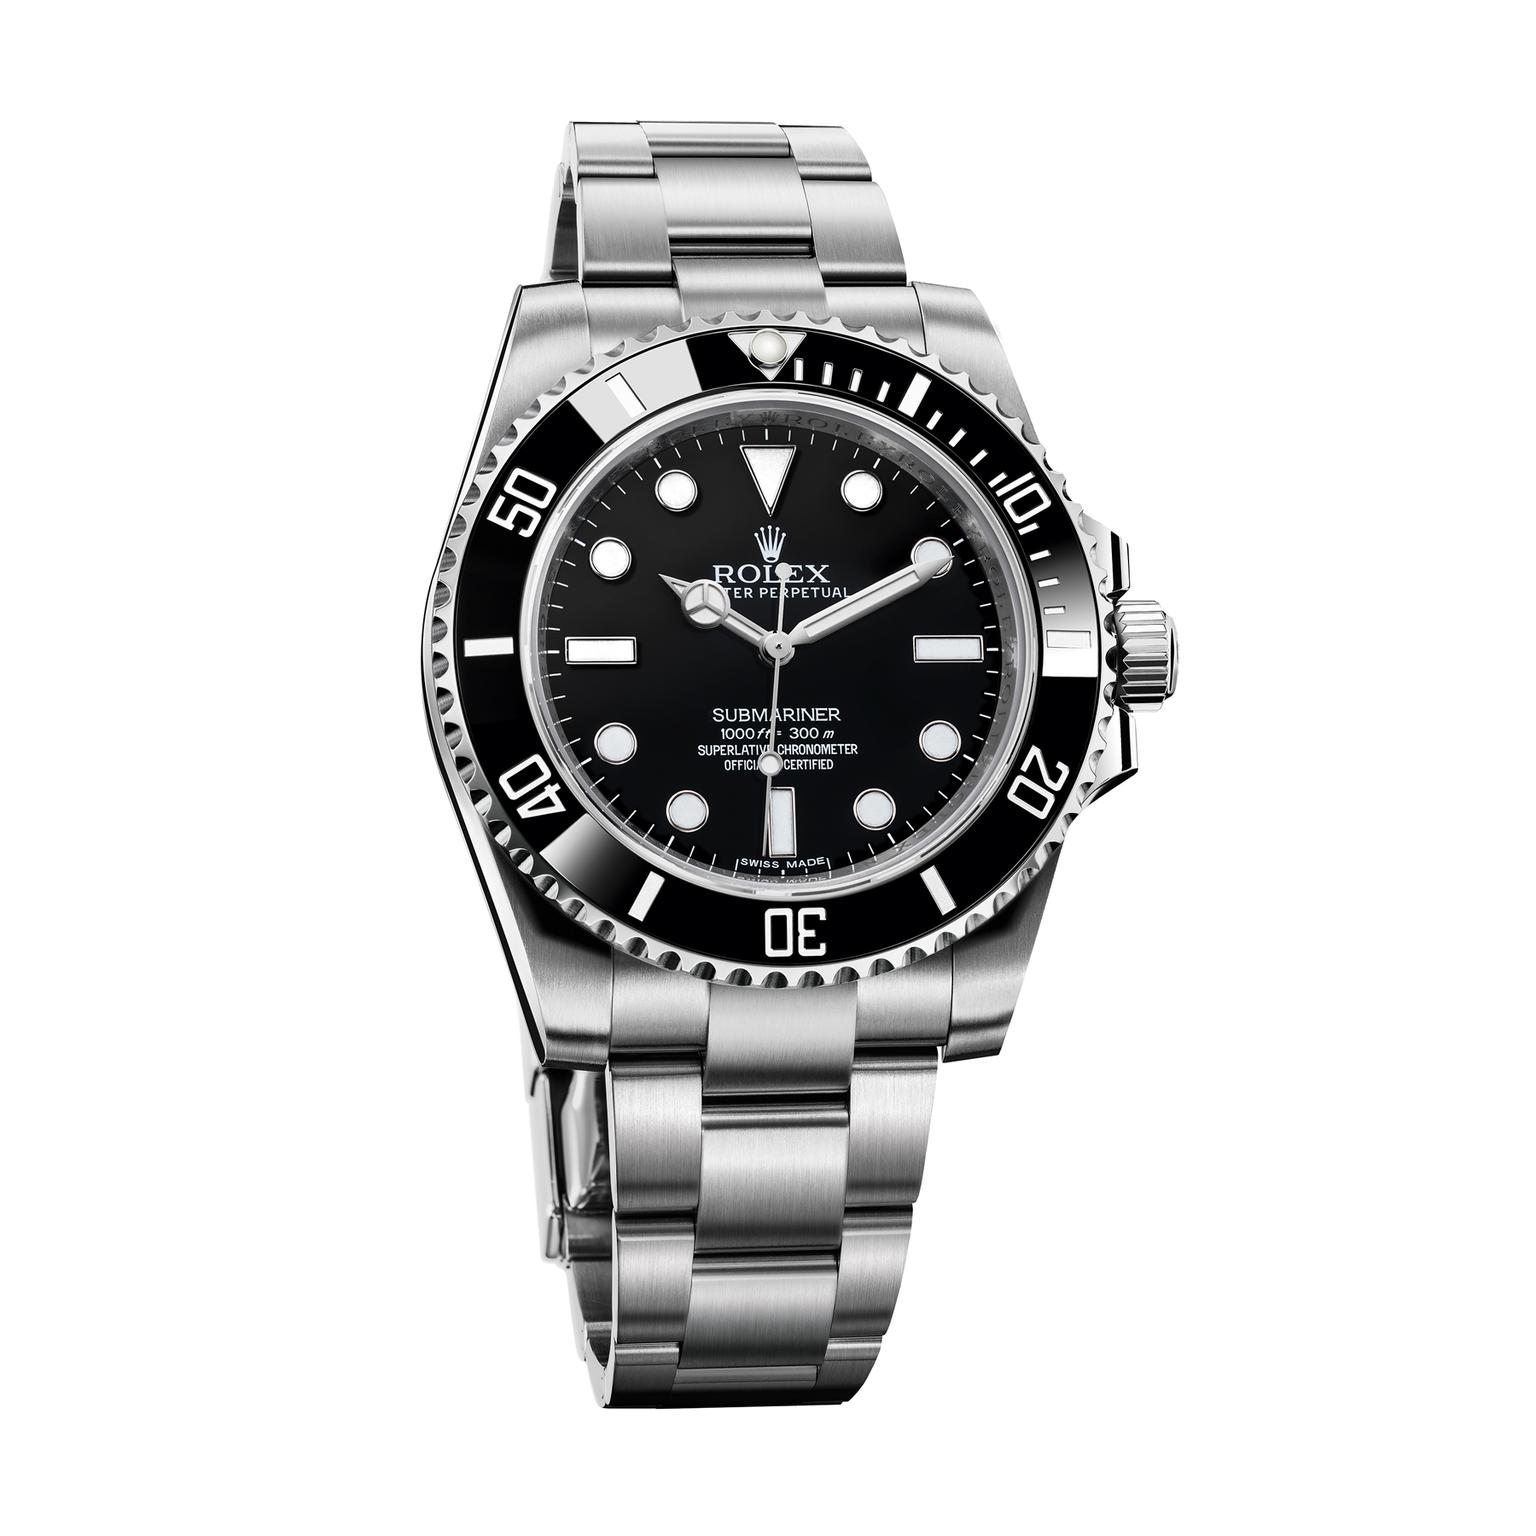 Rolex Submariner watch in steel